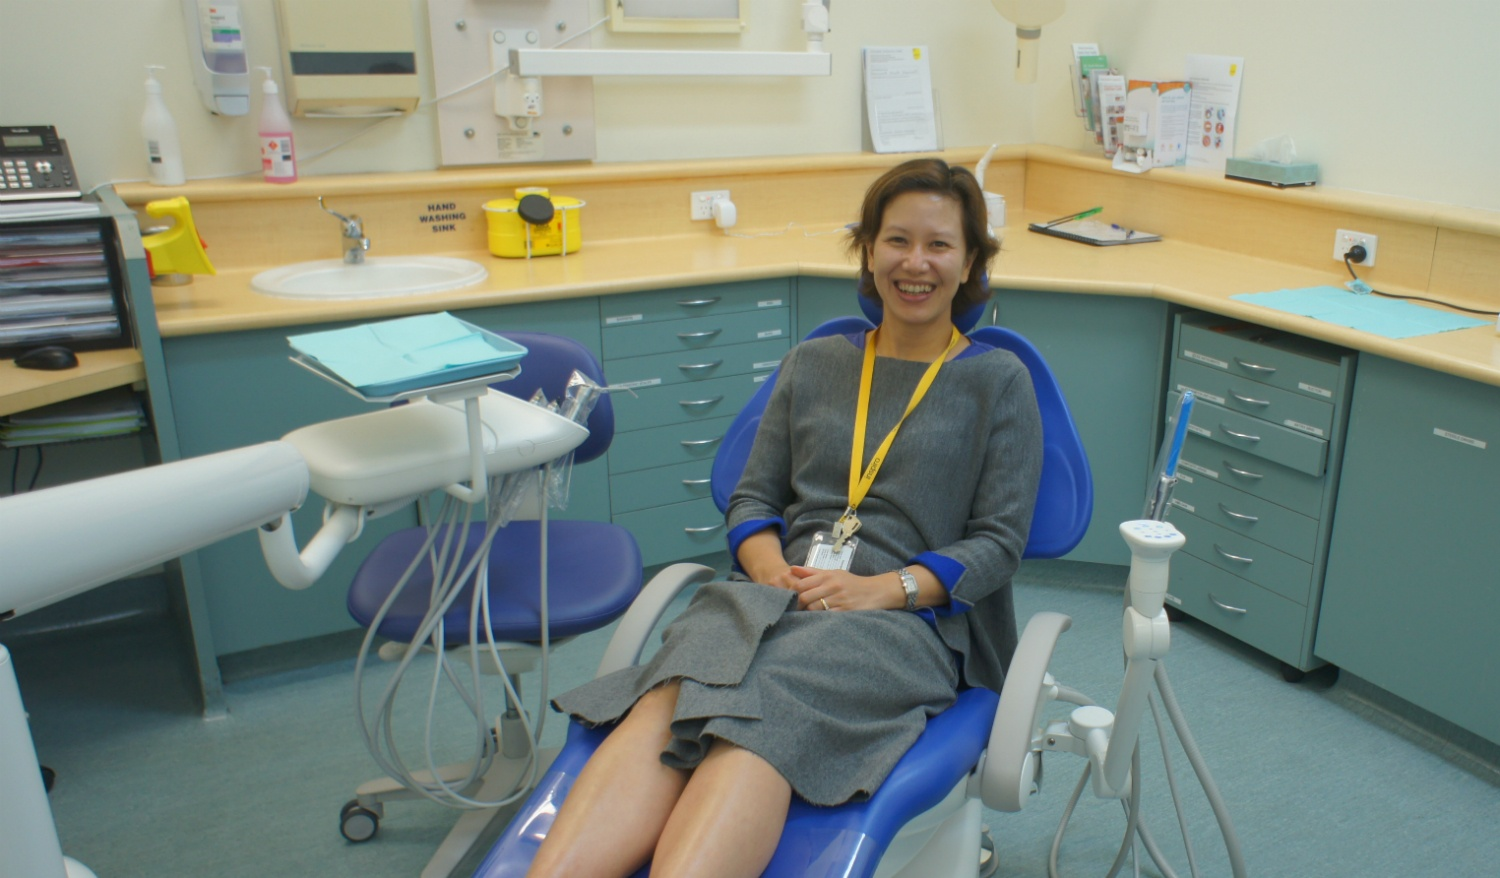 Inspiro's amazing new dental chairs improve the experience for clients